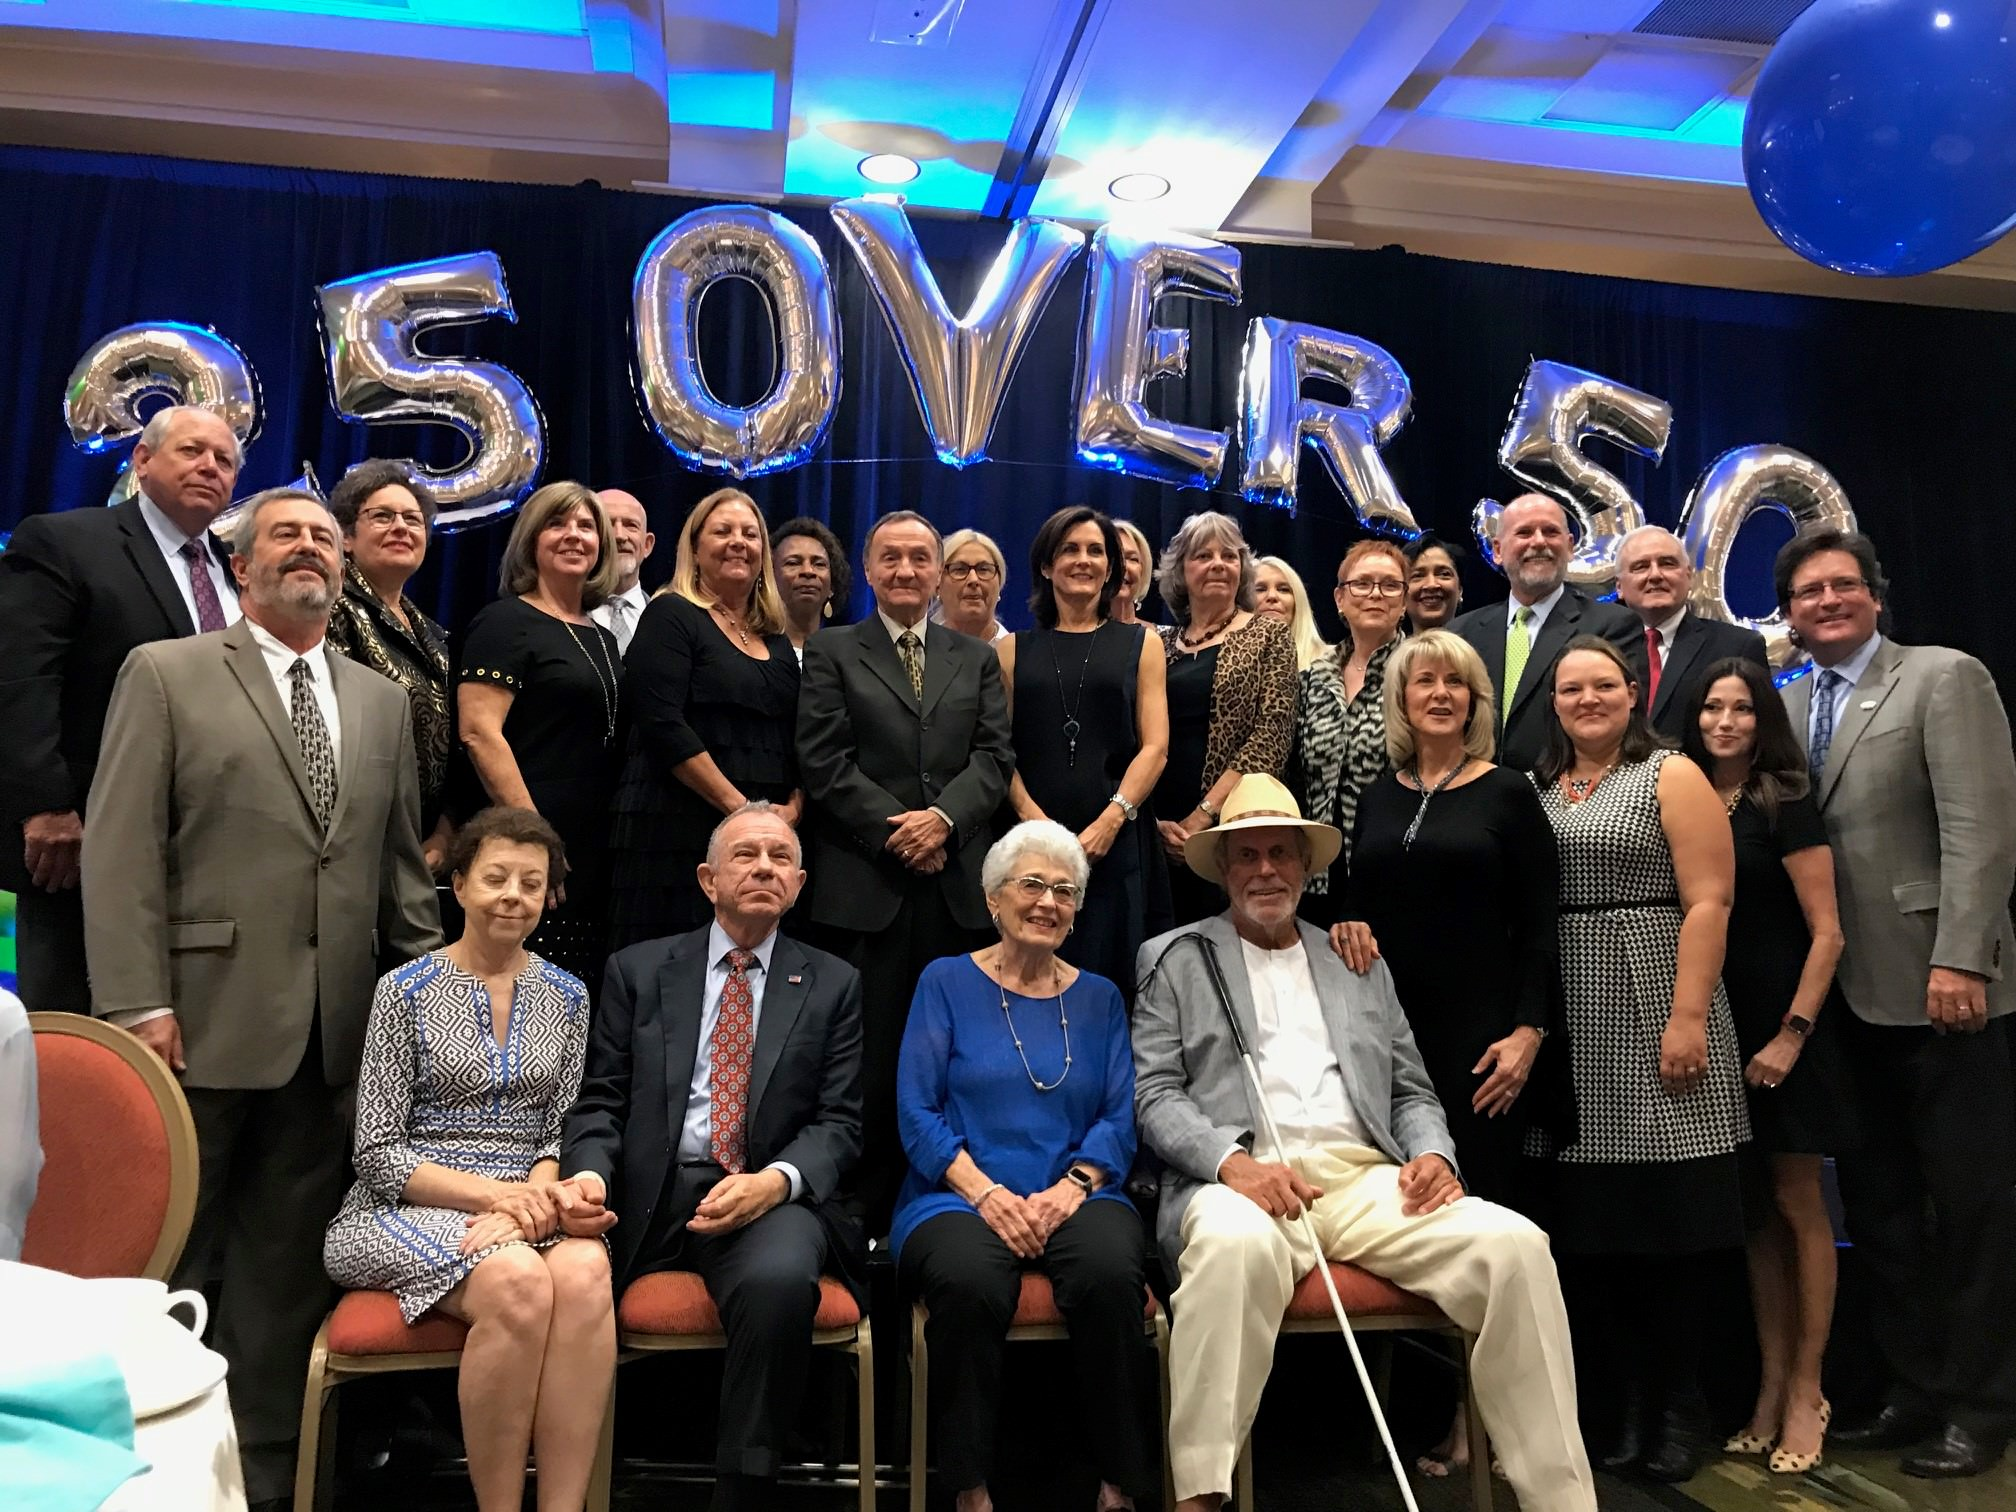 Owner Russell Budd Named Recipient of 25 Over 50 Award